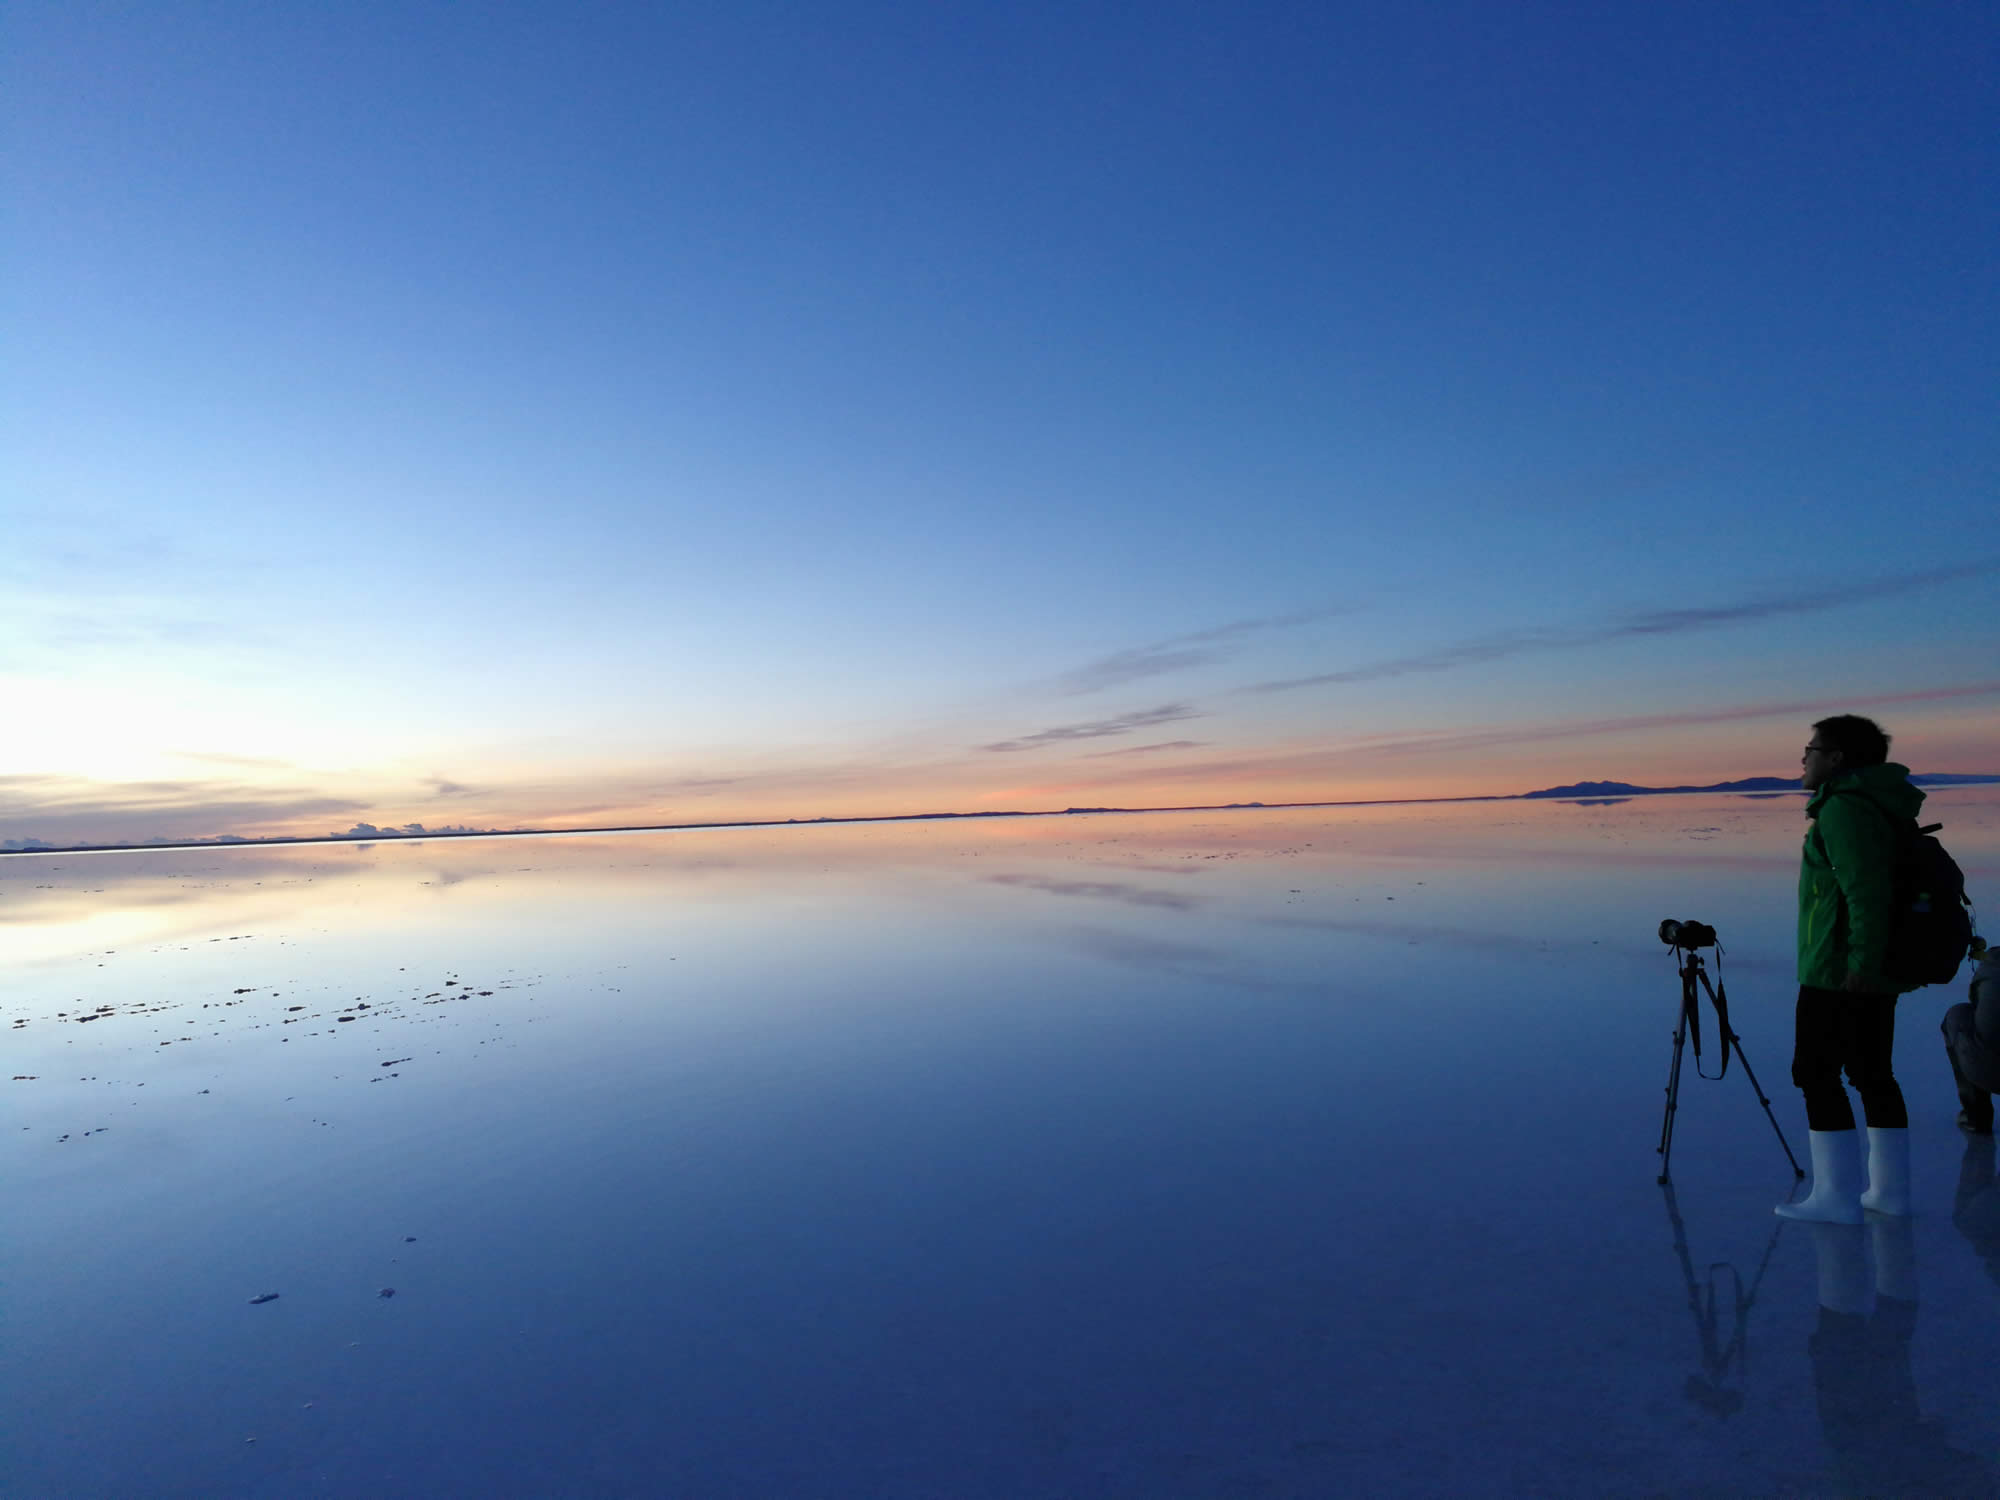 Salt Flats Bolivia Wet Season 2020